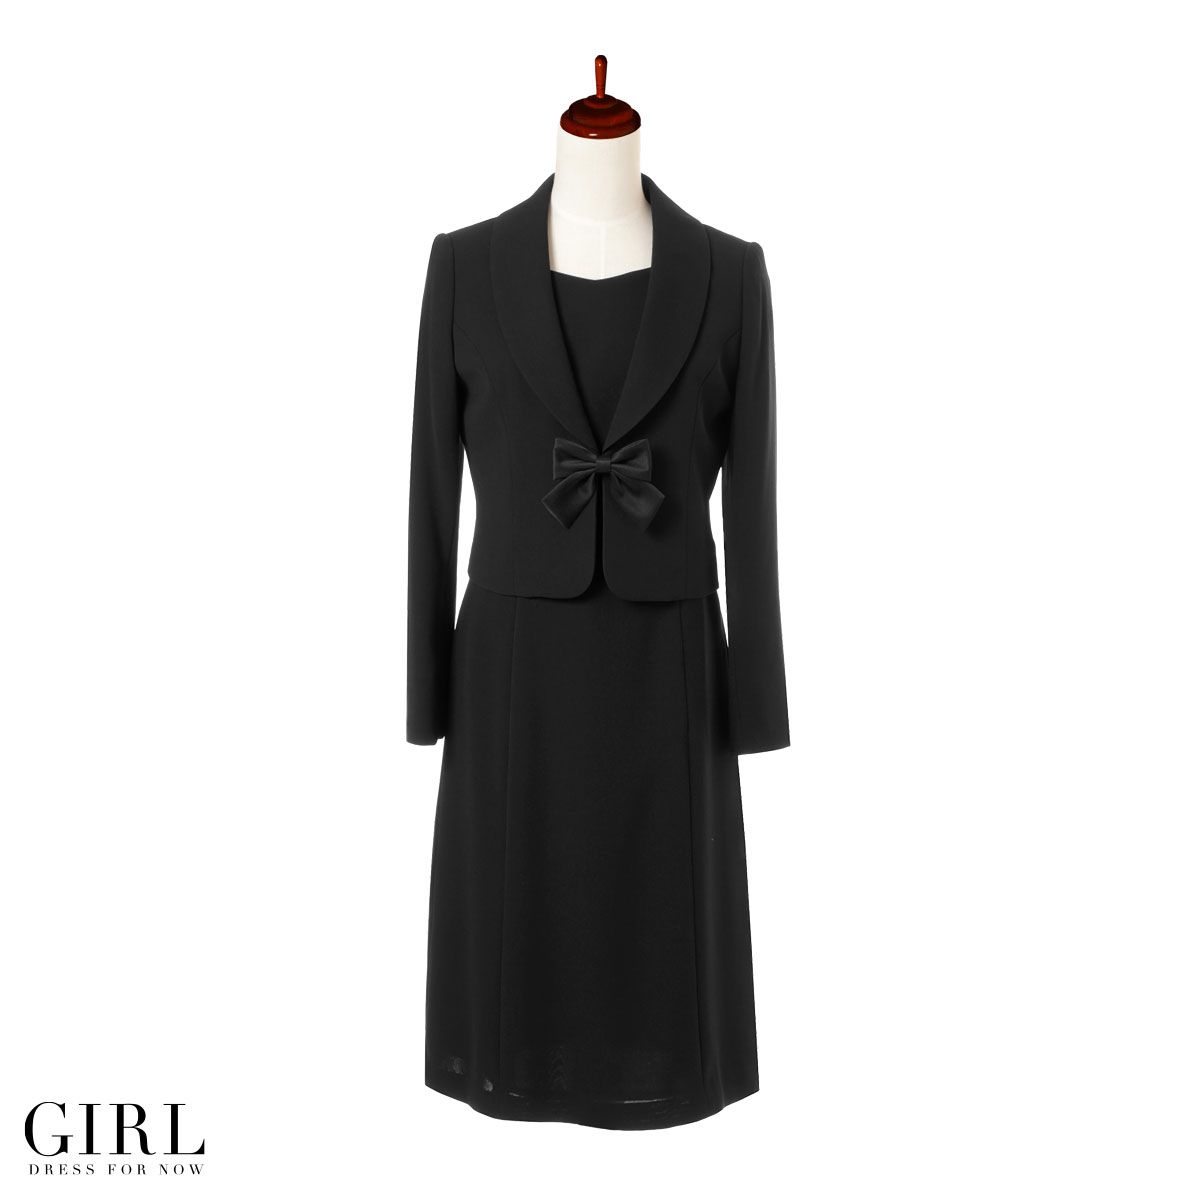 Formalwear suits set condolatory event suit suit set formalwear prom  dresses store otonagirl (otonaGIRL) Buddhist funeral dress jacket tailored